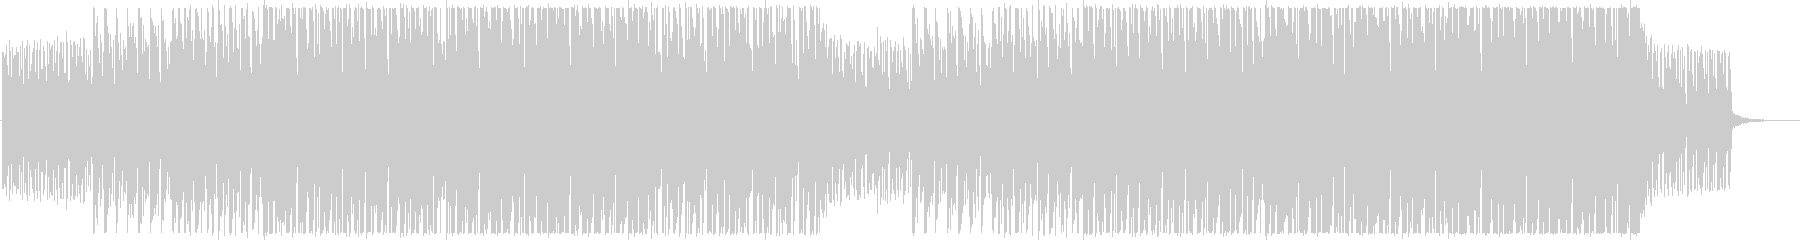 Refreshing and stylish corporate BGM's unreproduced waveform